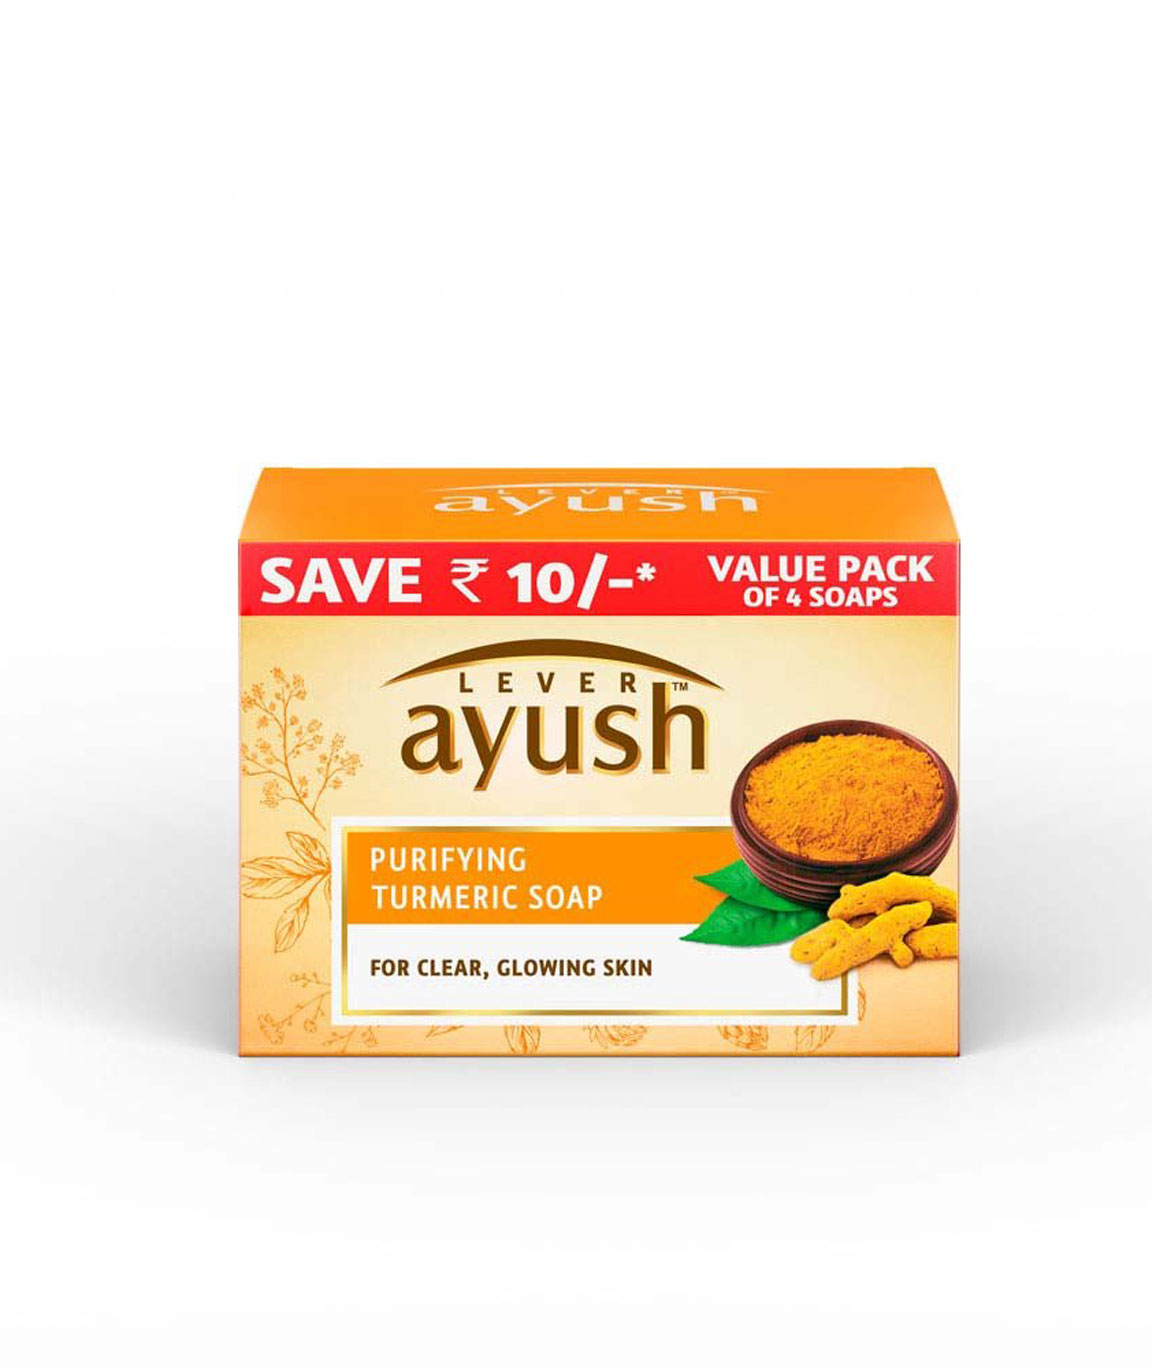 Lever Ayush Purifying Turmeric Soap 100g (Pack of 4)